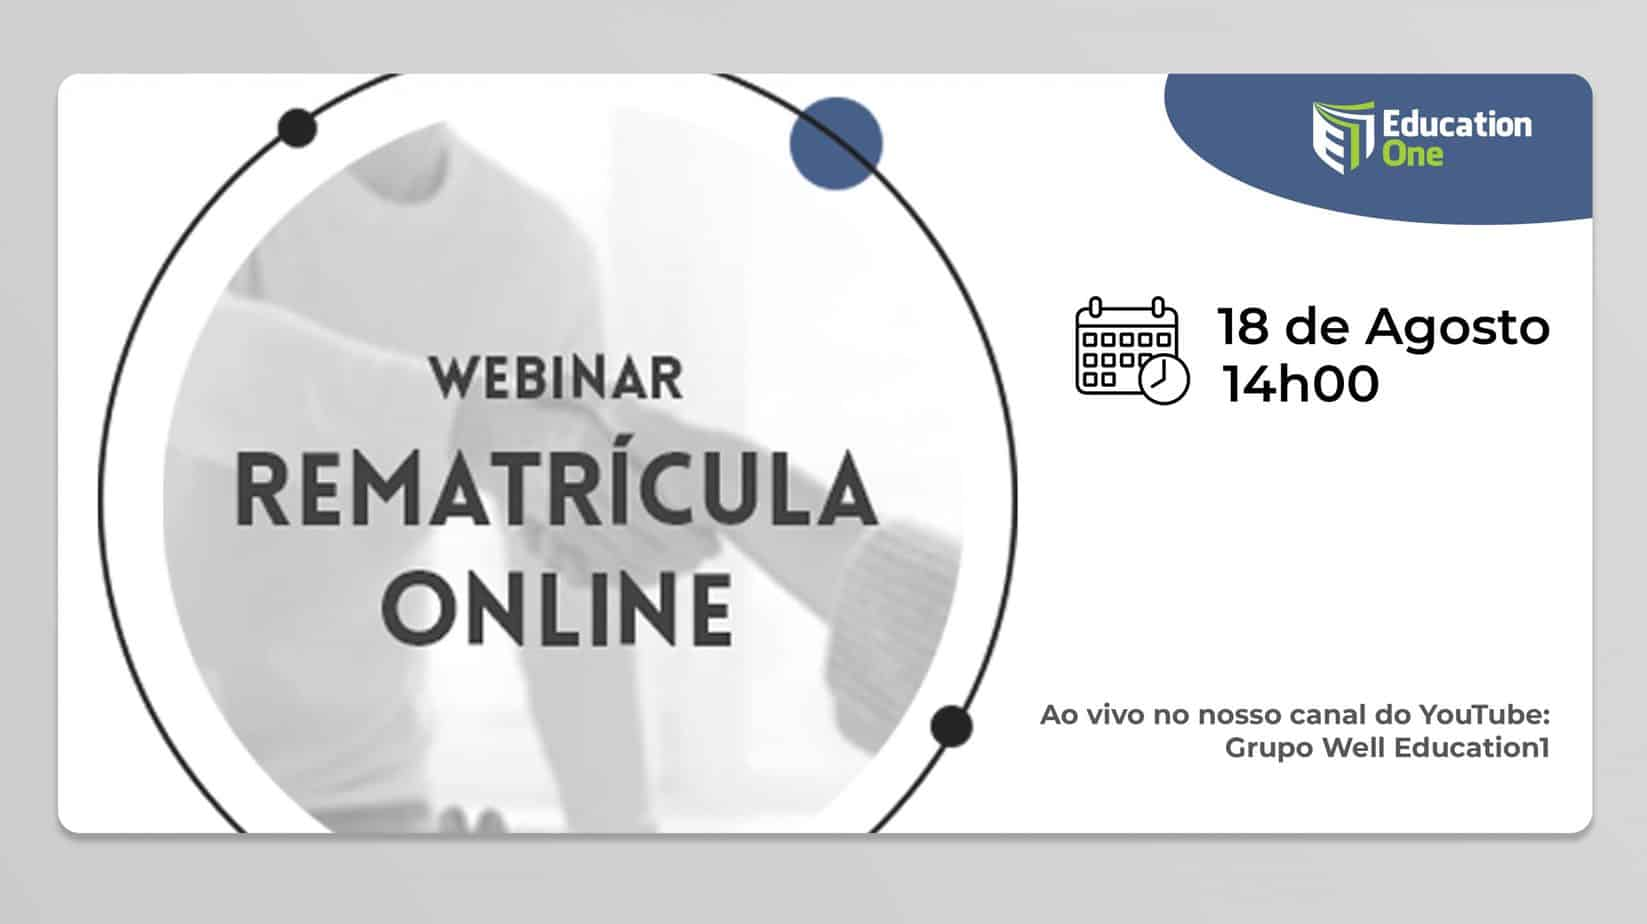 Webinar sobre rematrícula Online através do Education One